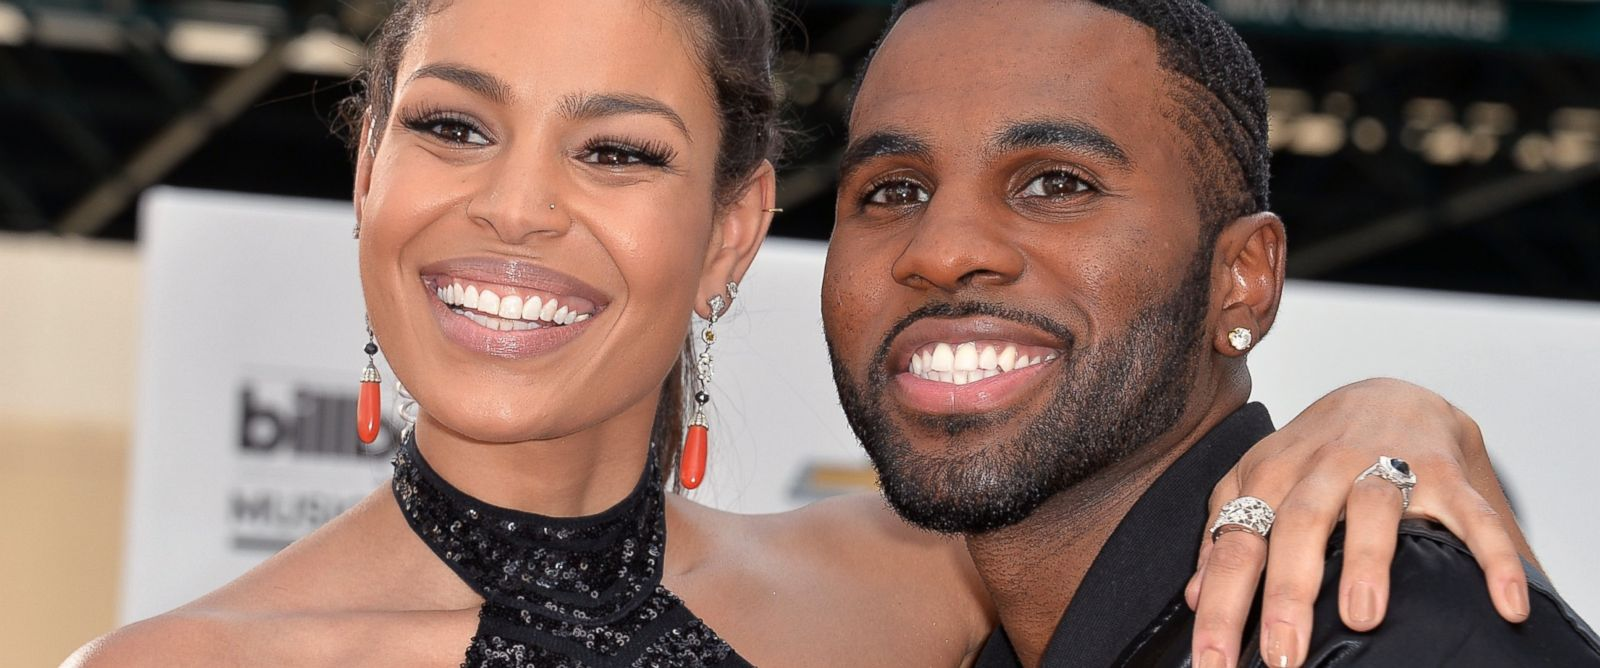 PHOTO: Singers Jordin Sparks and Jason Derulo attend the 2014 Billboard Music Awards at the MGM Grand Garden Arena on May 18, 2014 in Las Vegas, Nevada.